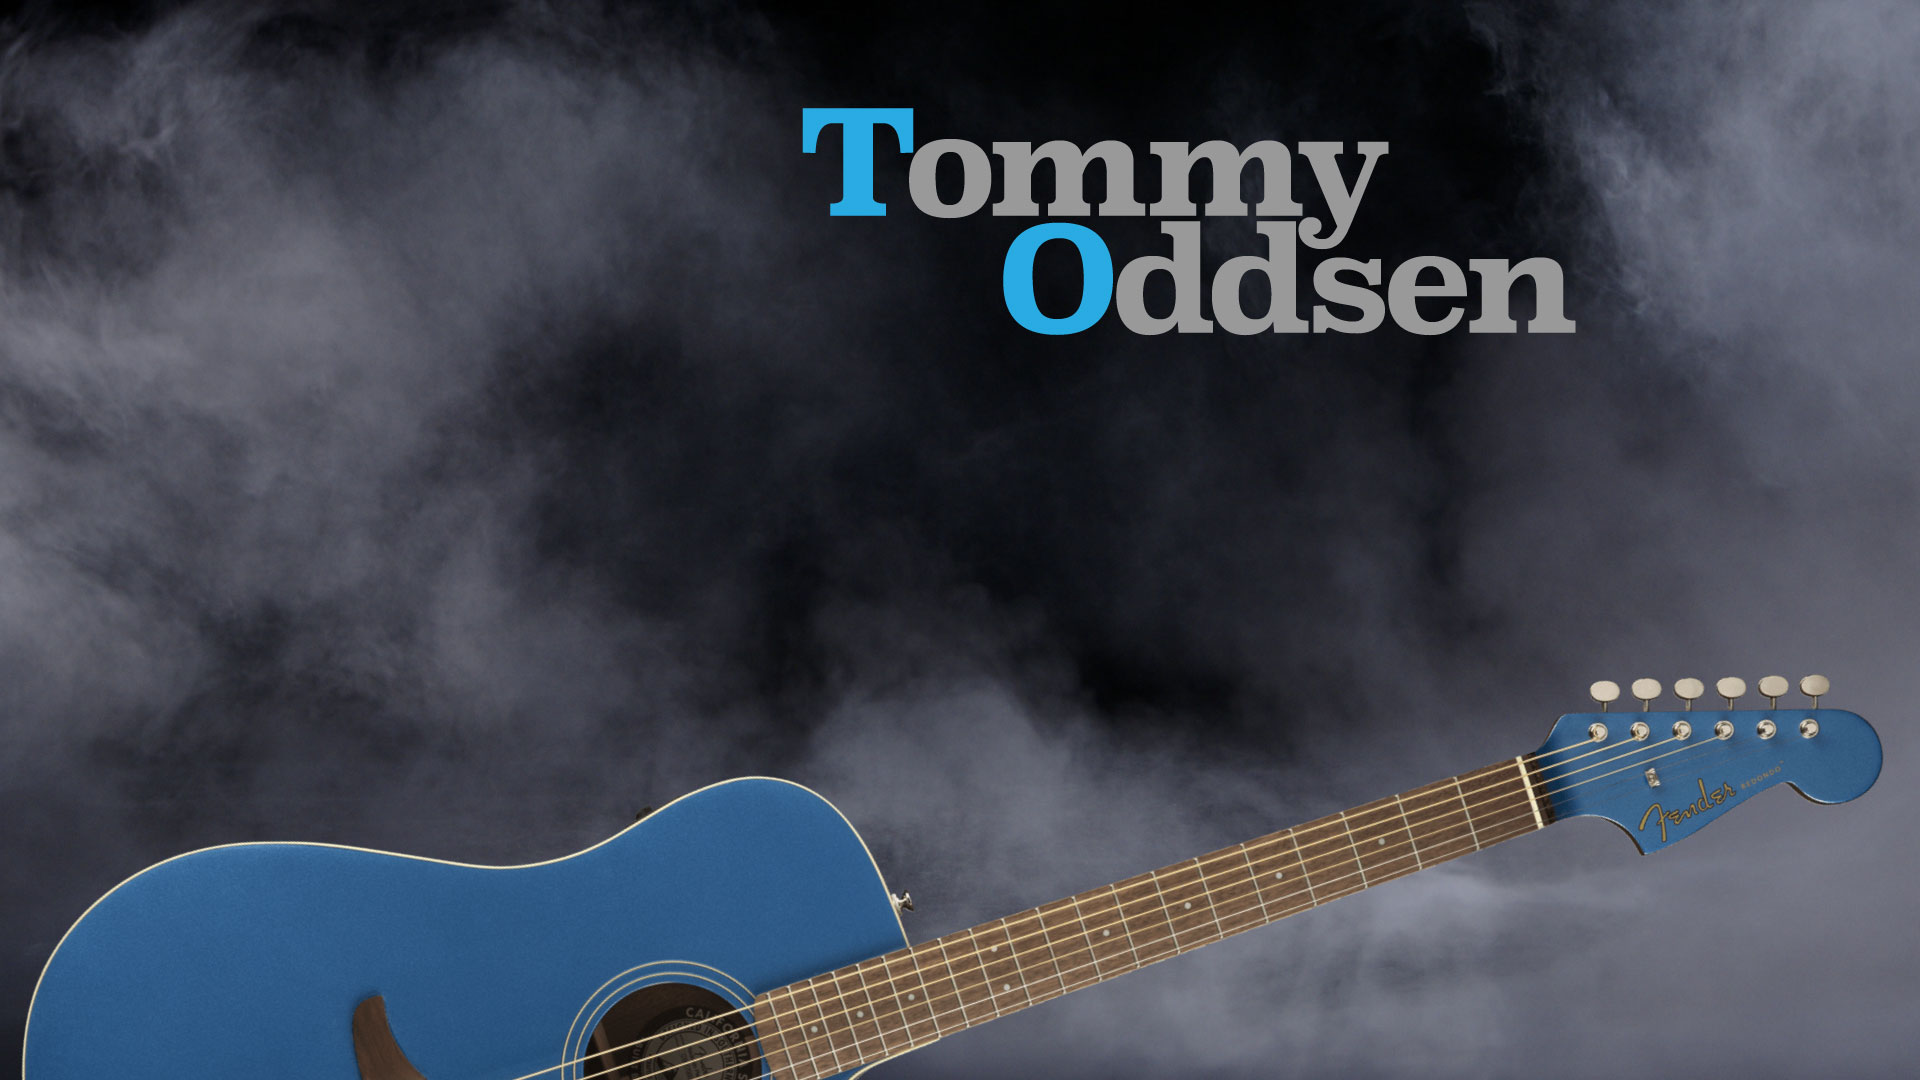 Music Saturday: Tommy Oddsen